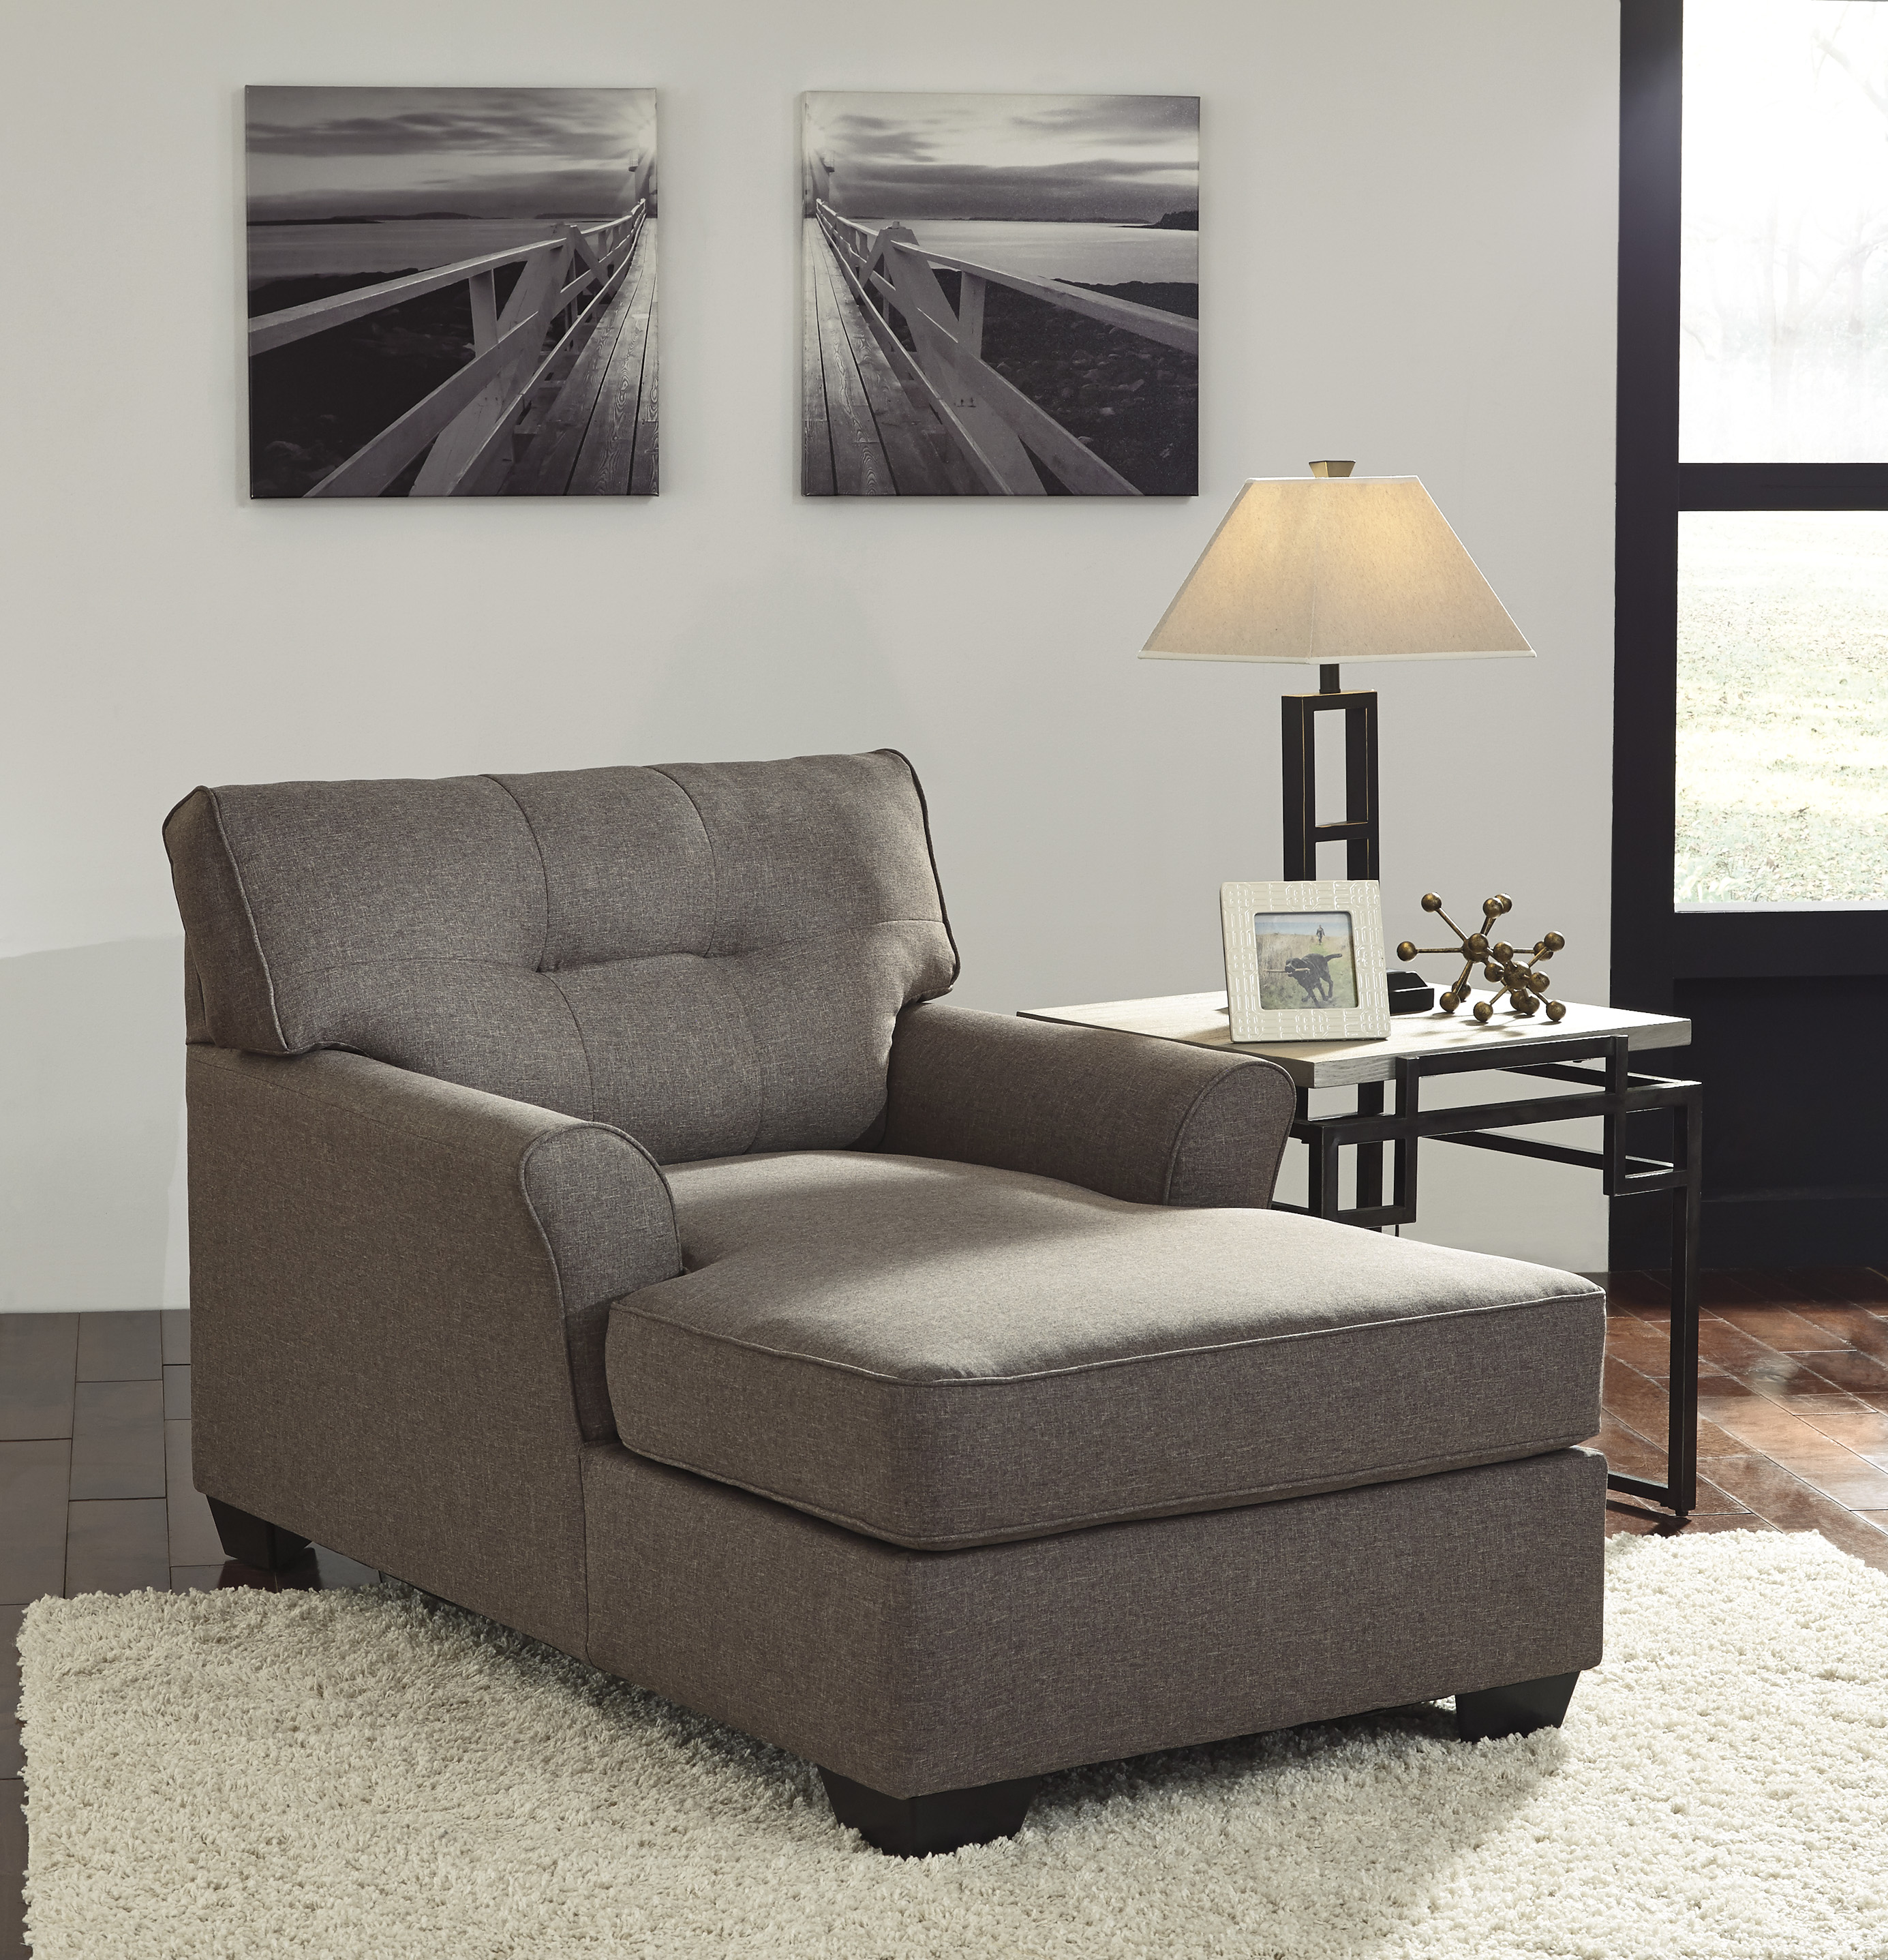 Discount Furniture Websites: Ashley Furniture Tibbee Slate 2pc Living Room Set FREE